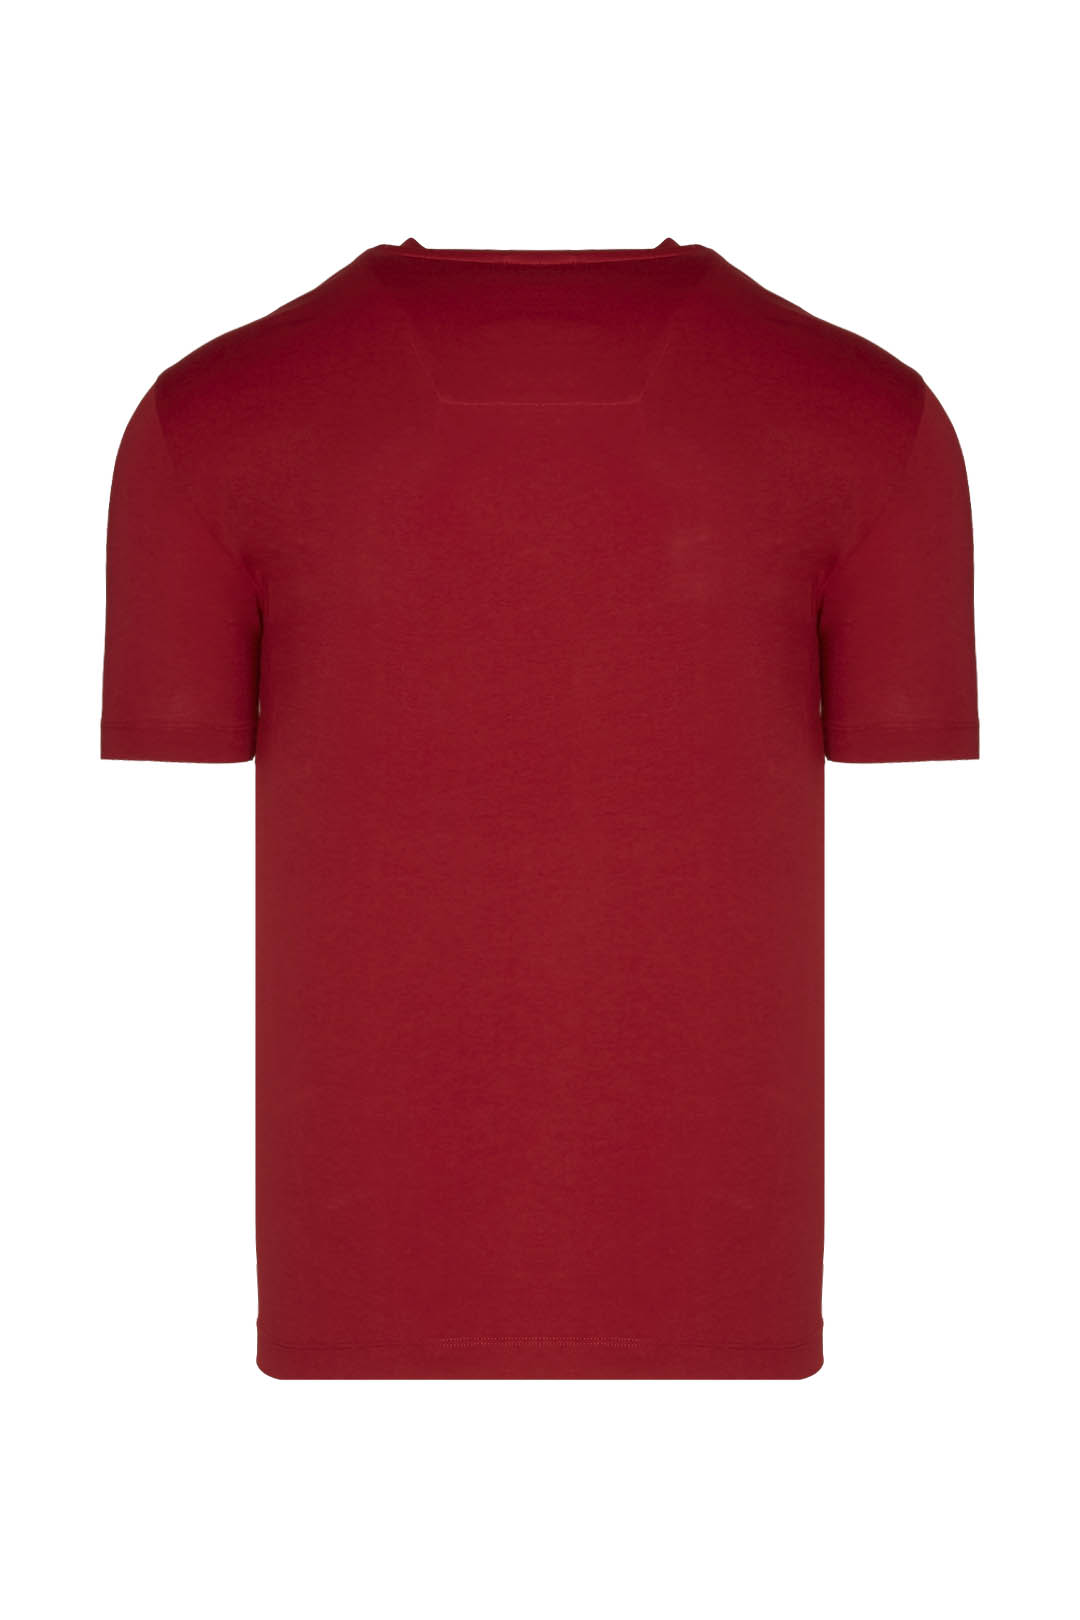 6th Wing Red Devil flock printed t-shirt 2